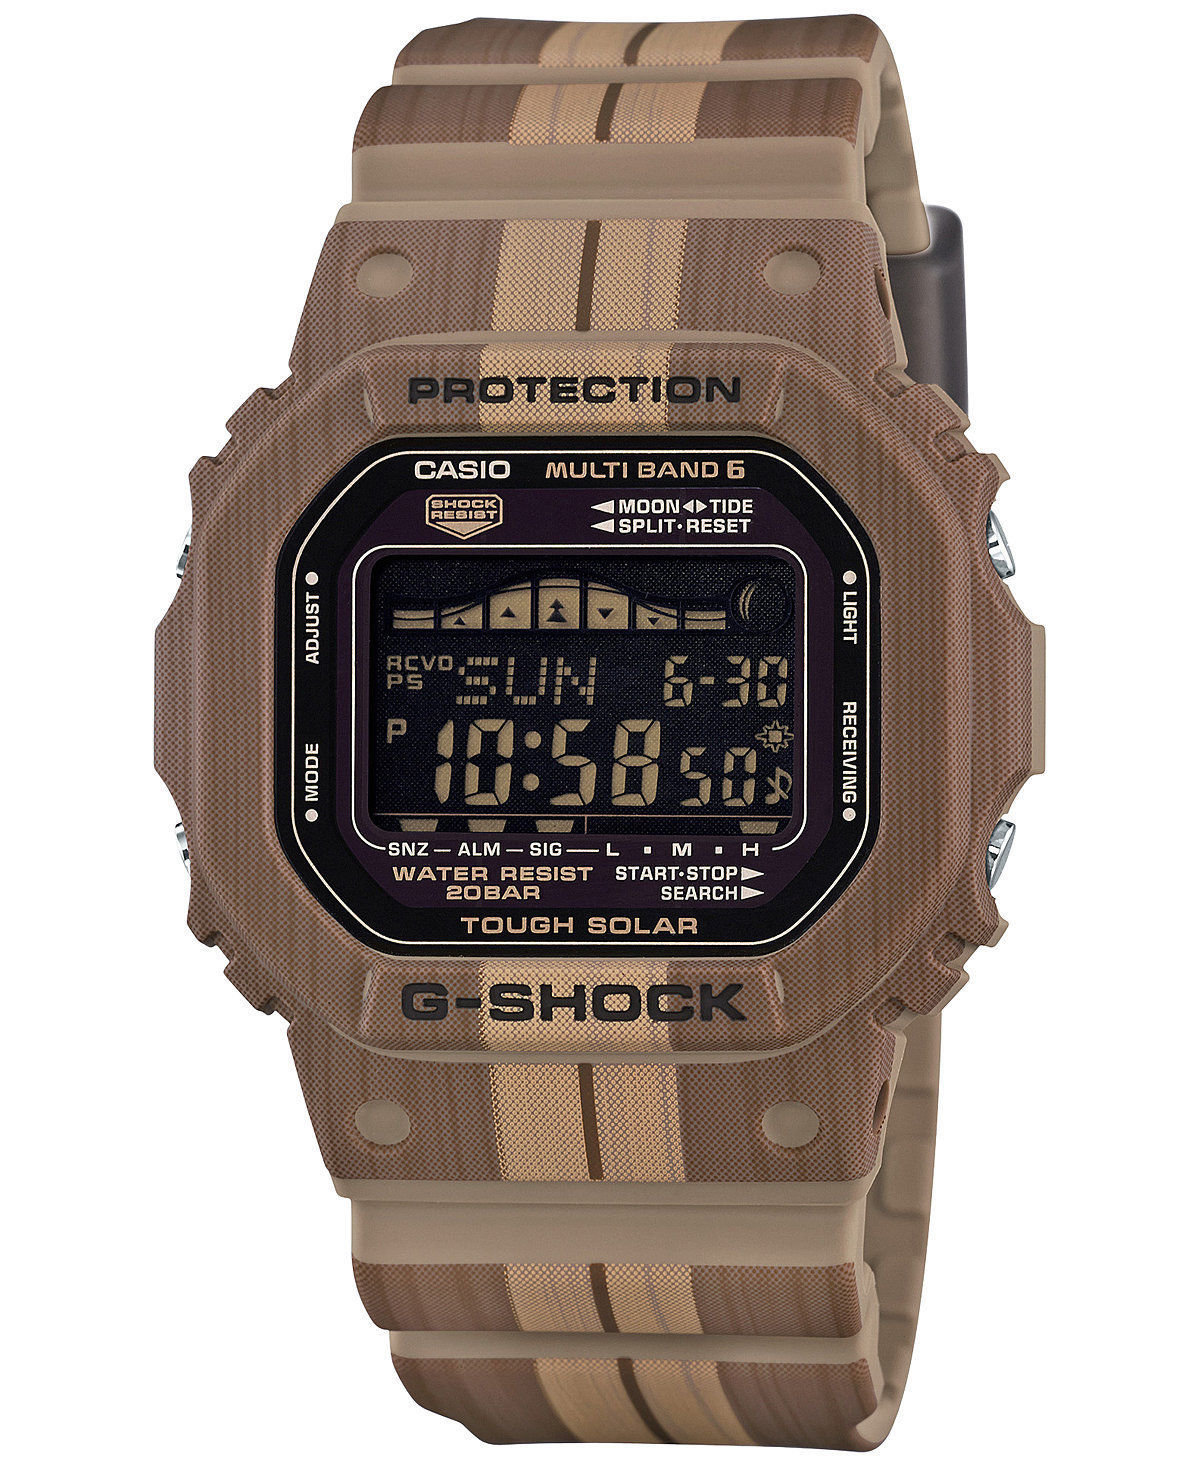 Reloj hombre solar RADIOCONTROL Casio G-Shock GWX-5600WB-5 Tough Solar Multifunction Brown/Tan Resin Watch